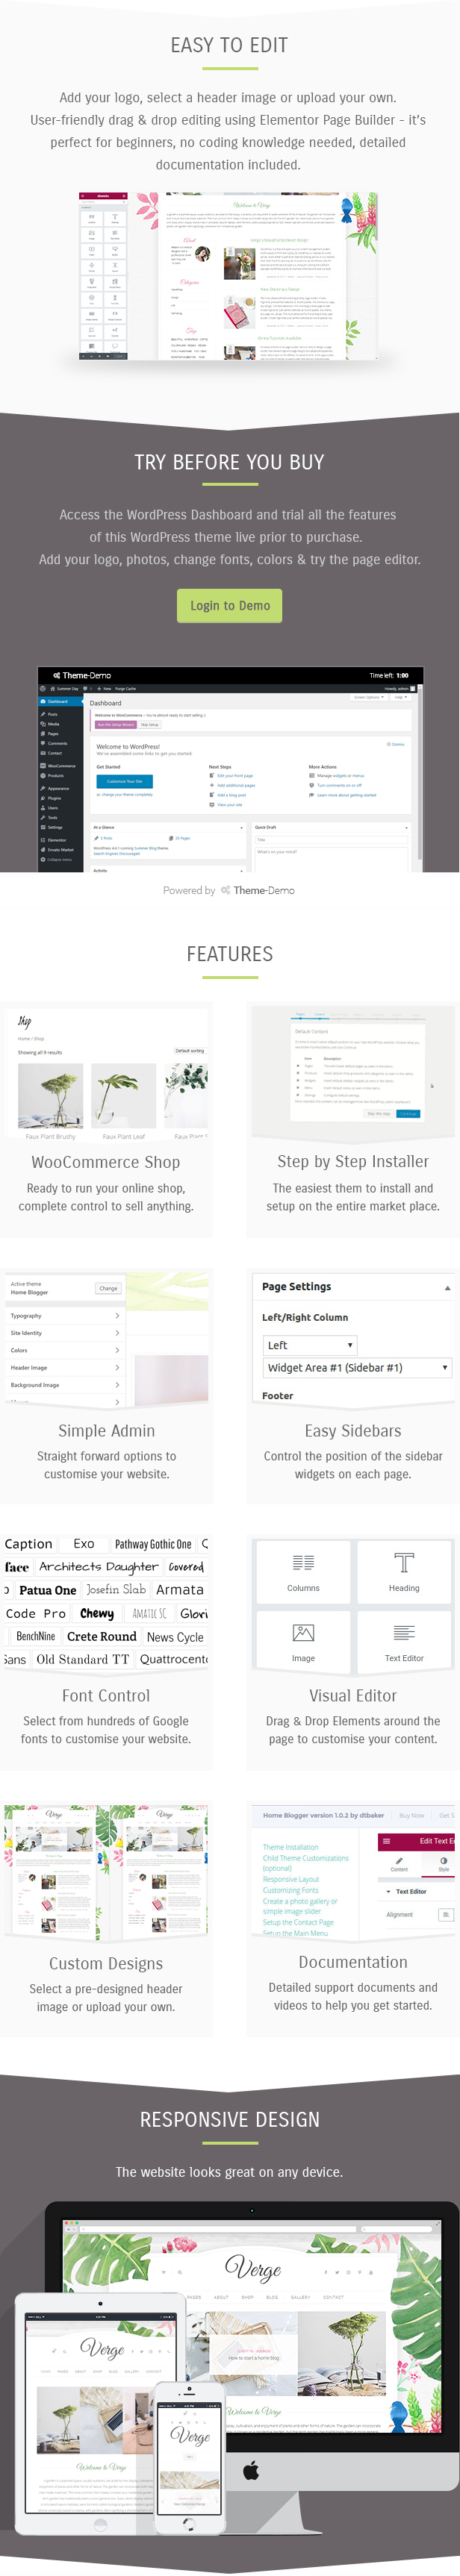 Easy to edit WordPress theme